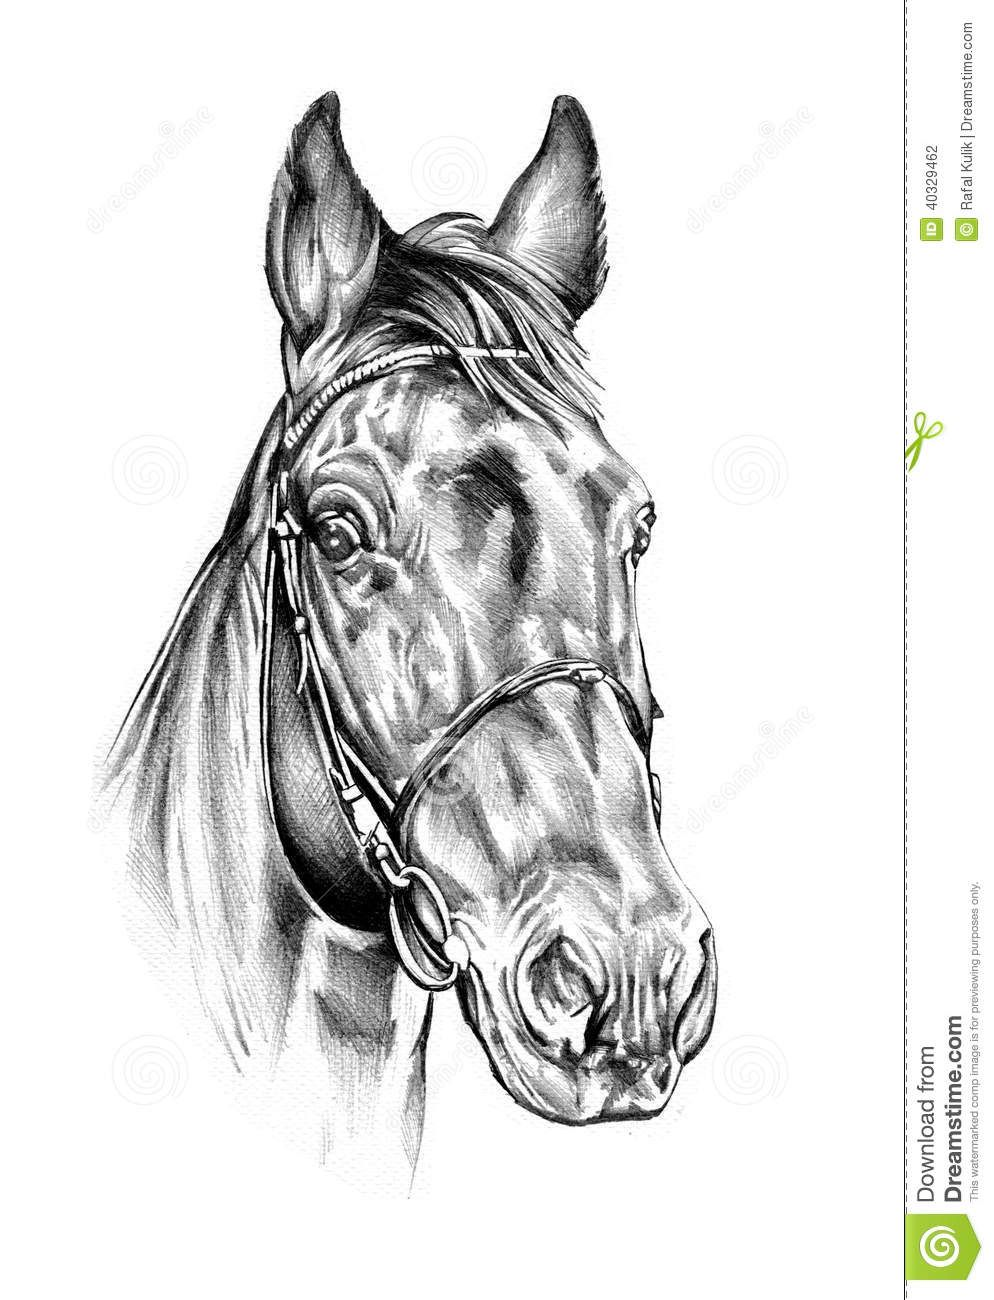 Freehand Horse Head Pencil Drawing Stock Illustration - Image ...